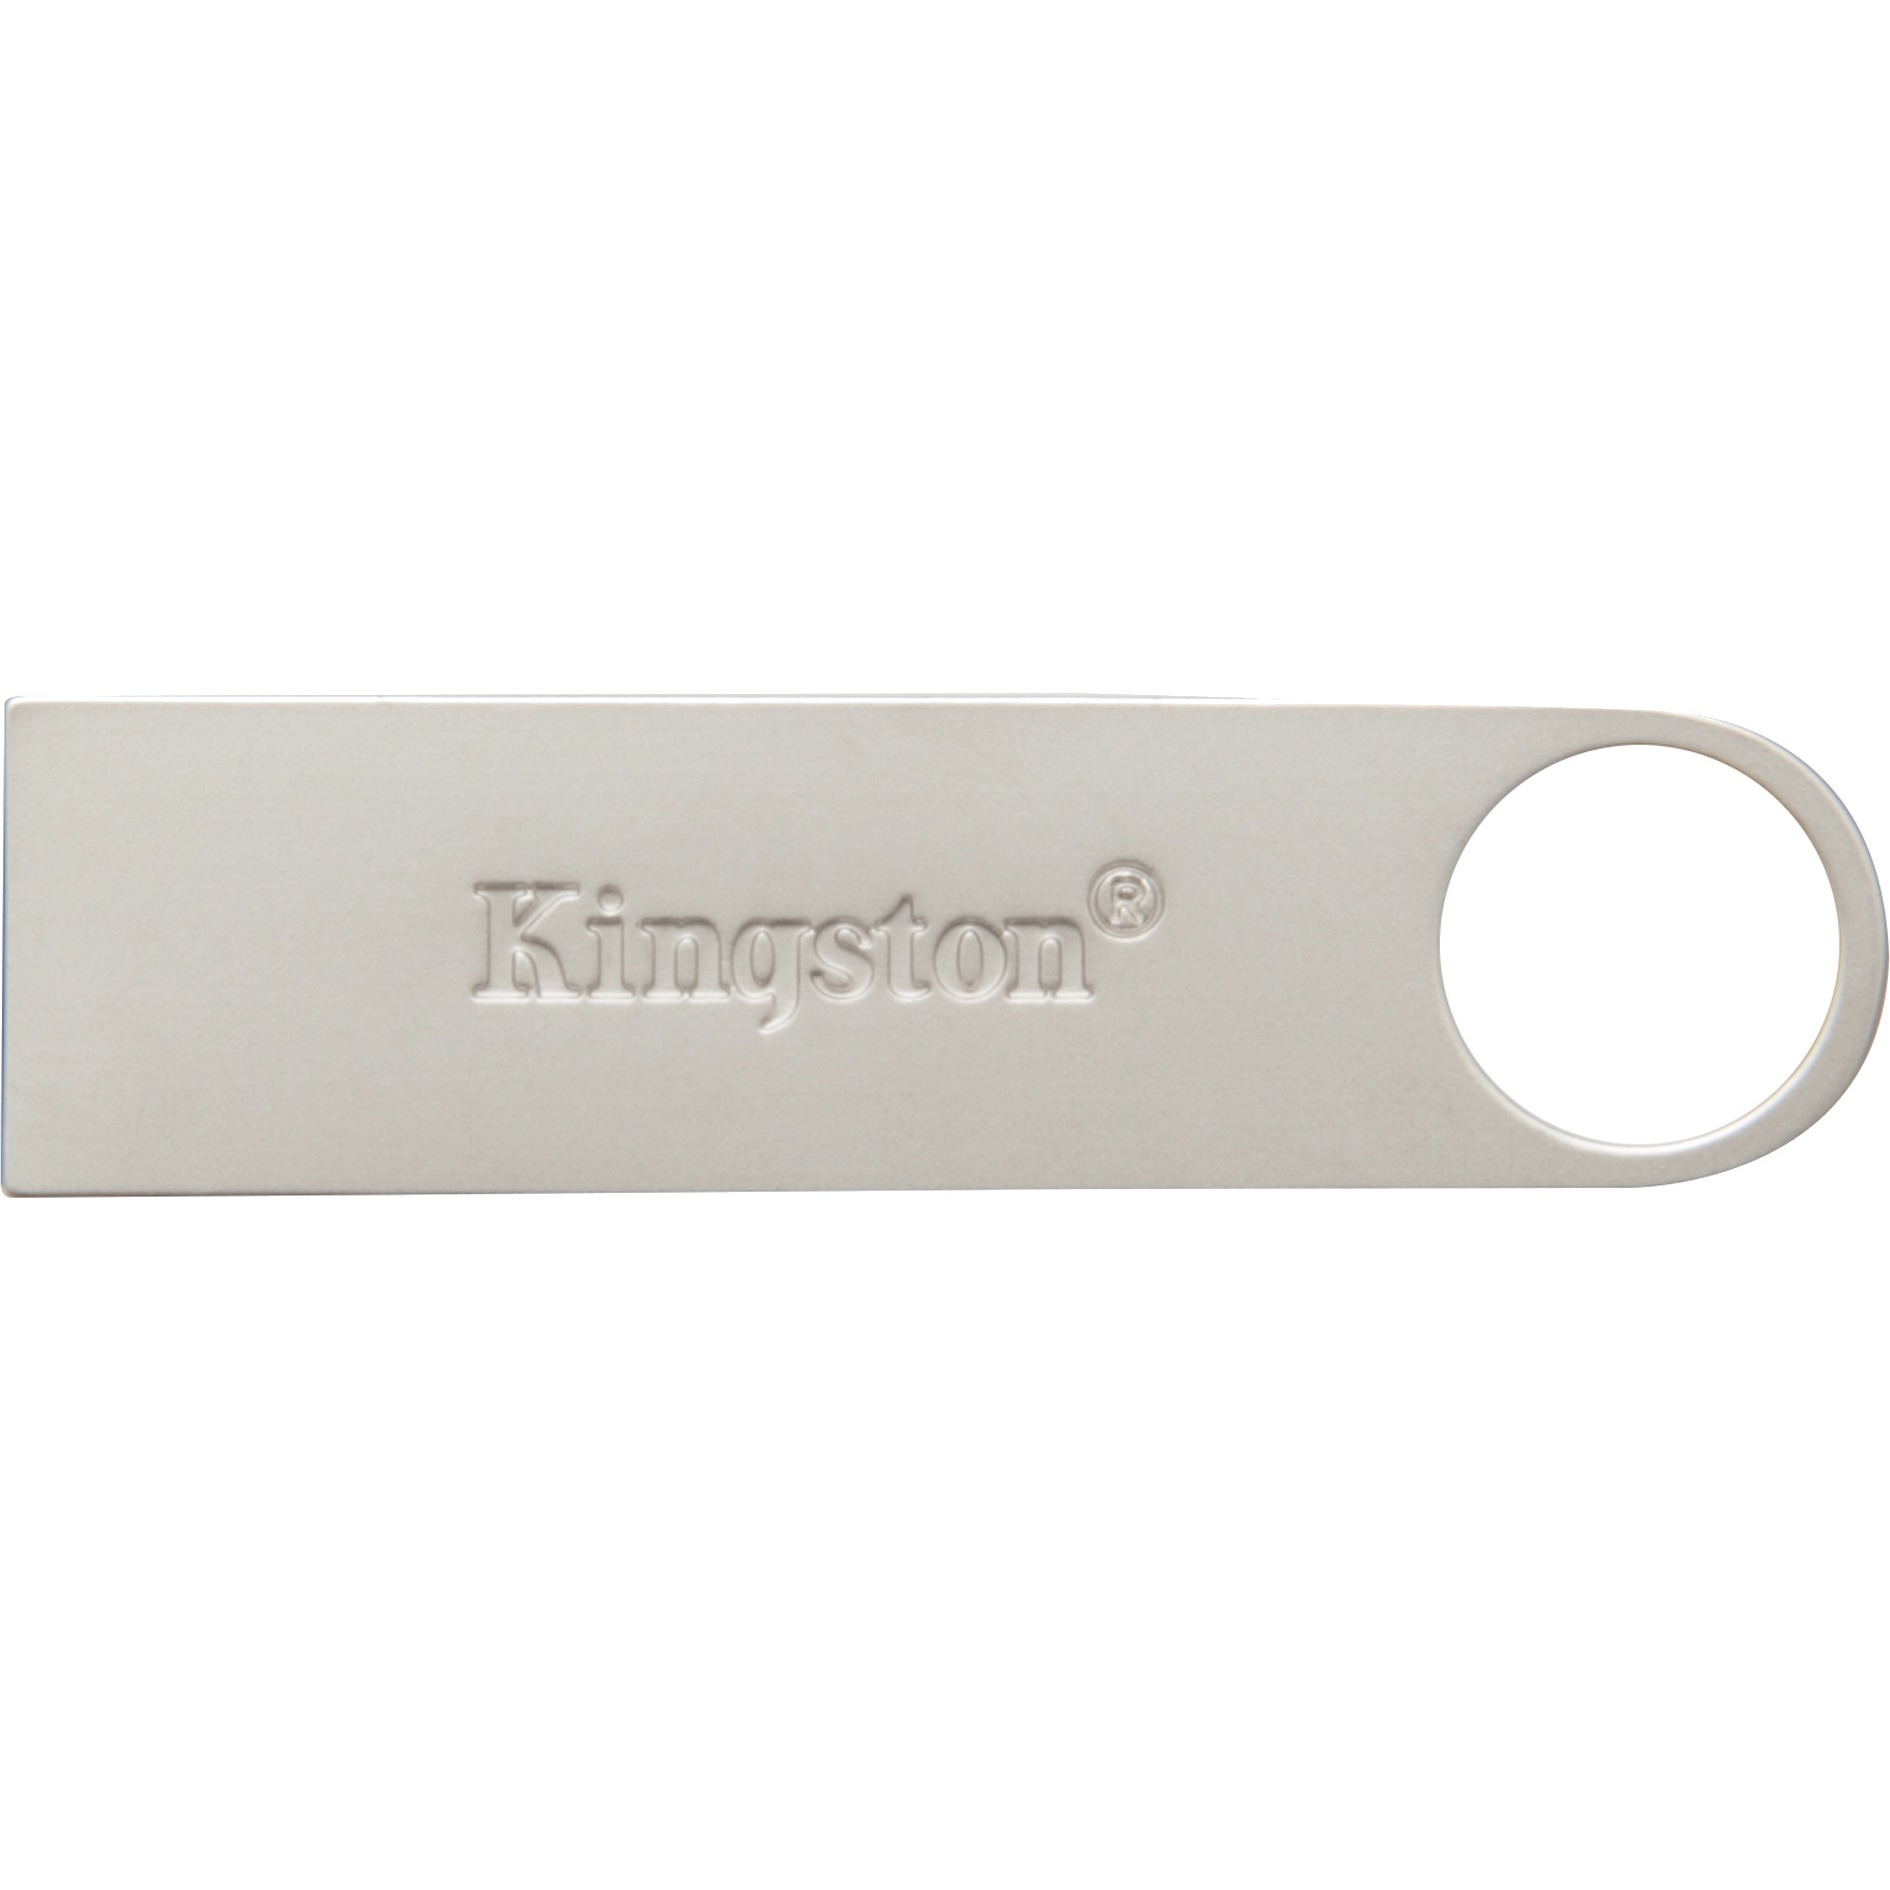 Kingston DataTraveler SE9 G2 64 GB USB 3.0 Flash Drive - Silver